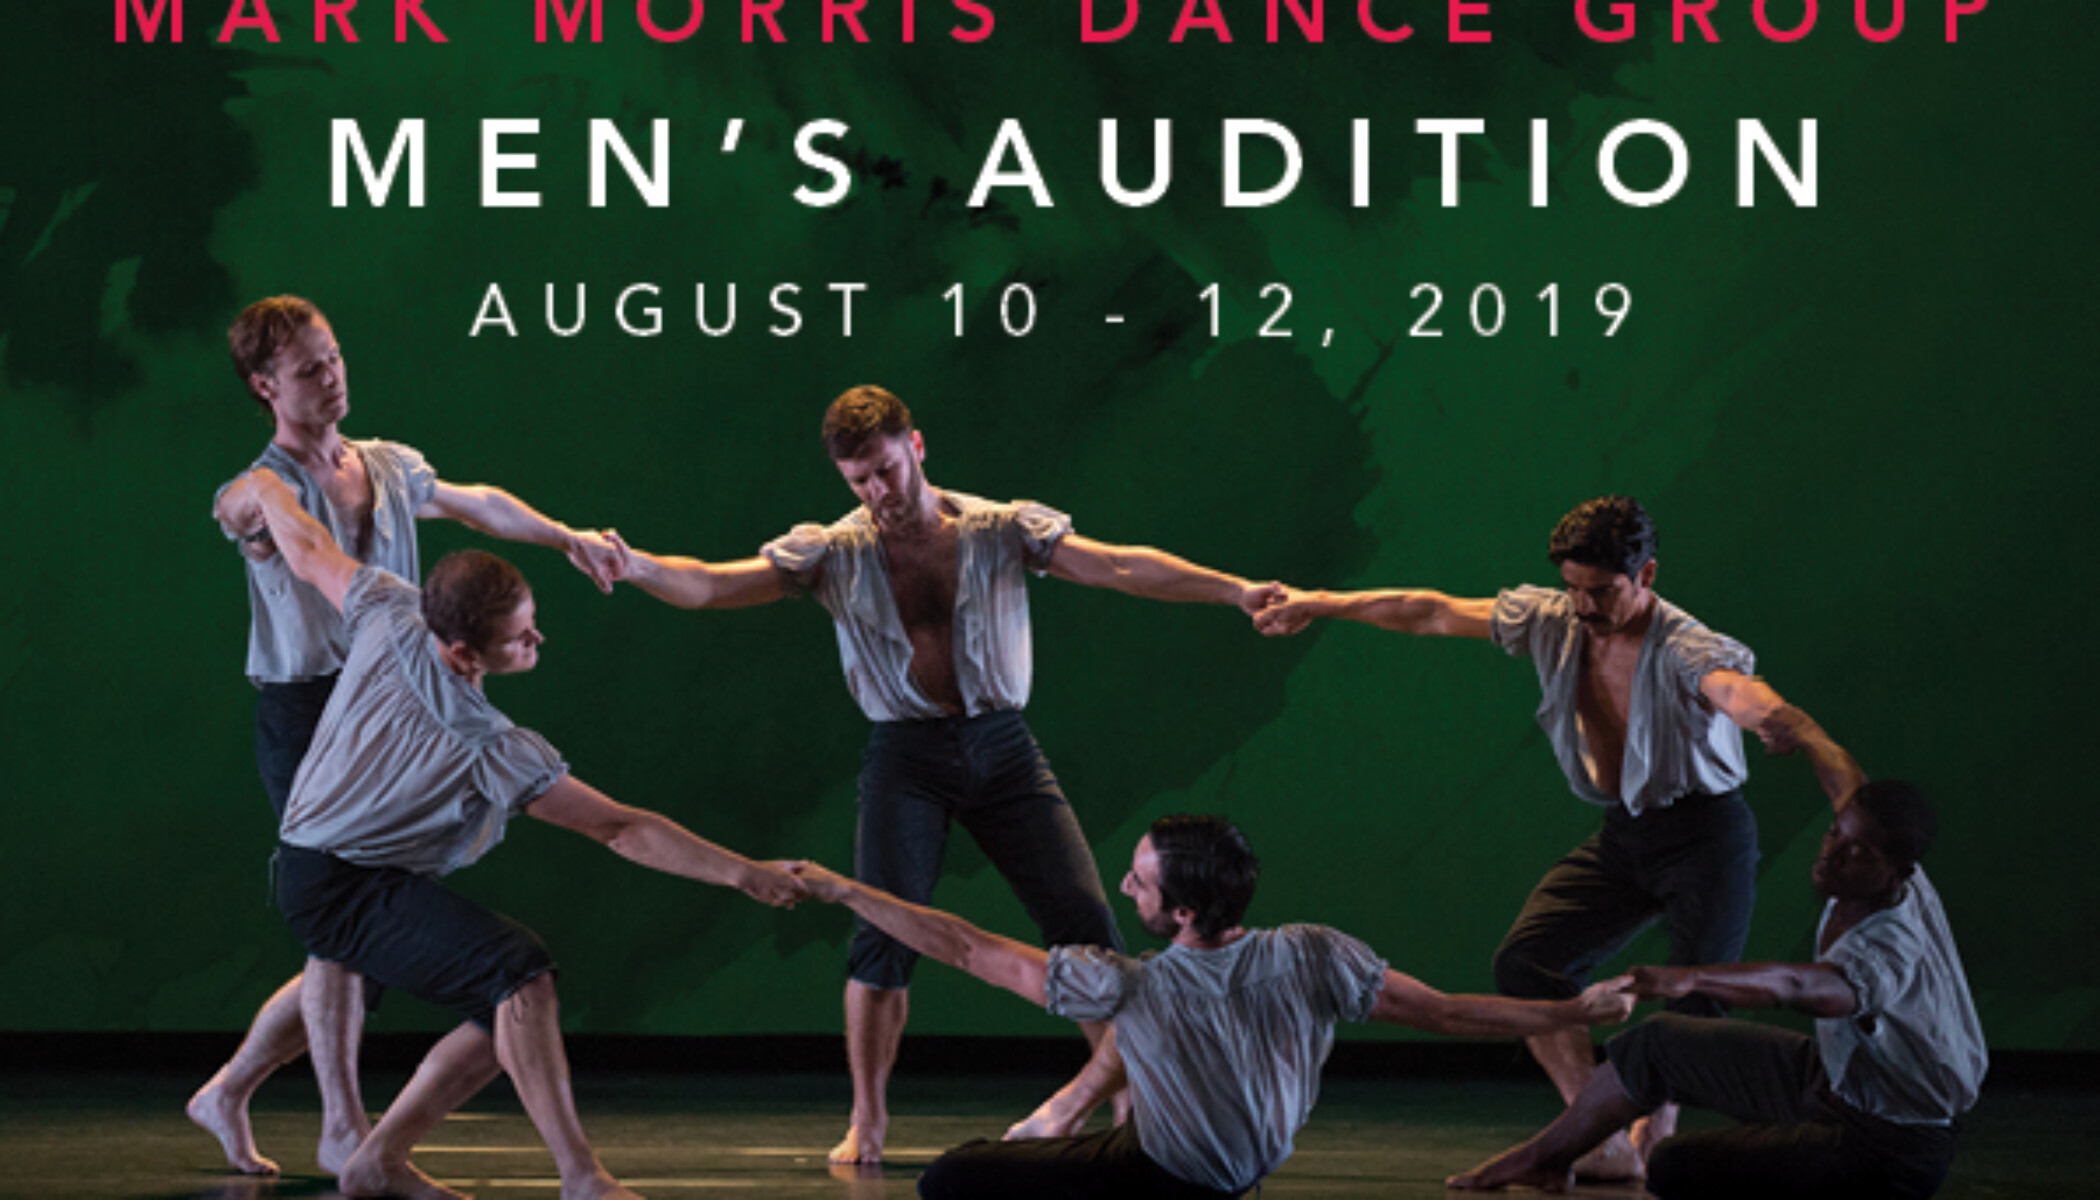 Opportunities: Mark Morris Dance Group Men's Audition (Mark